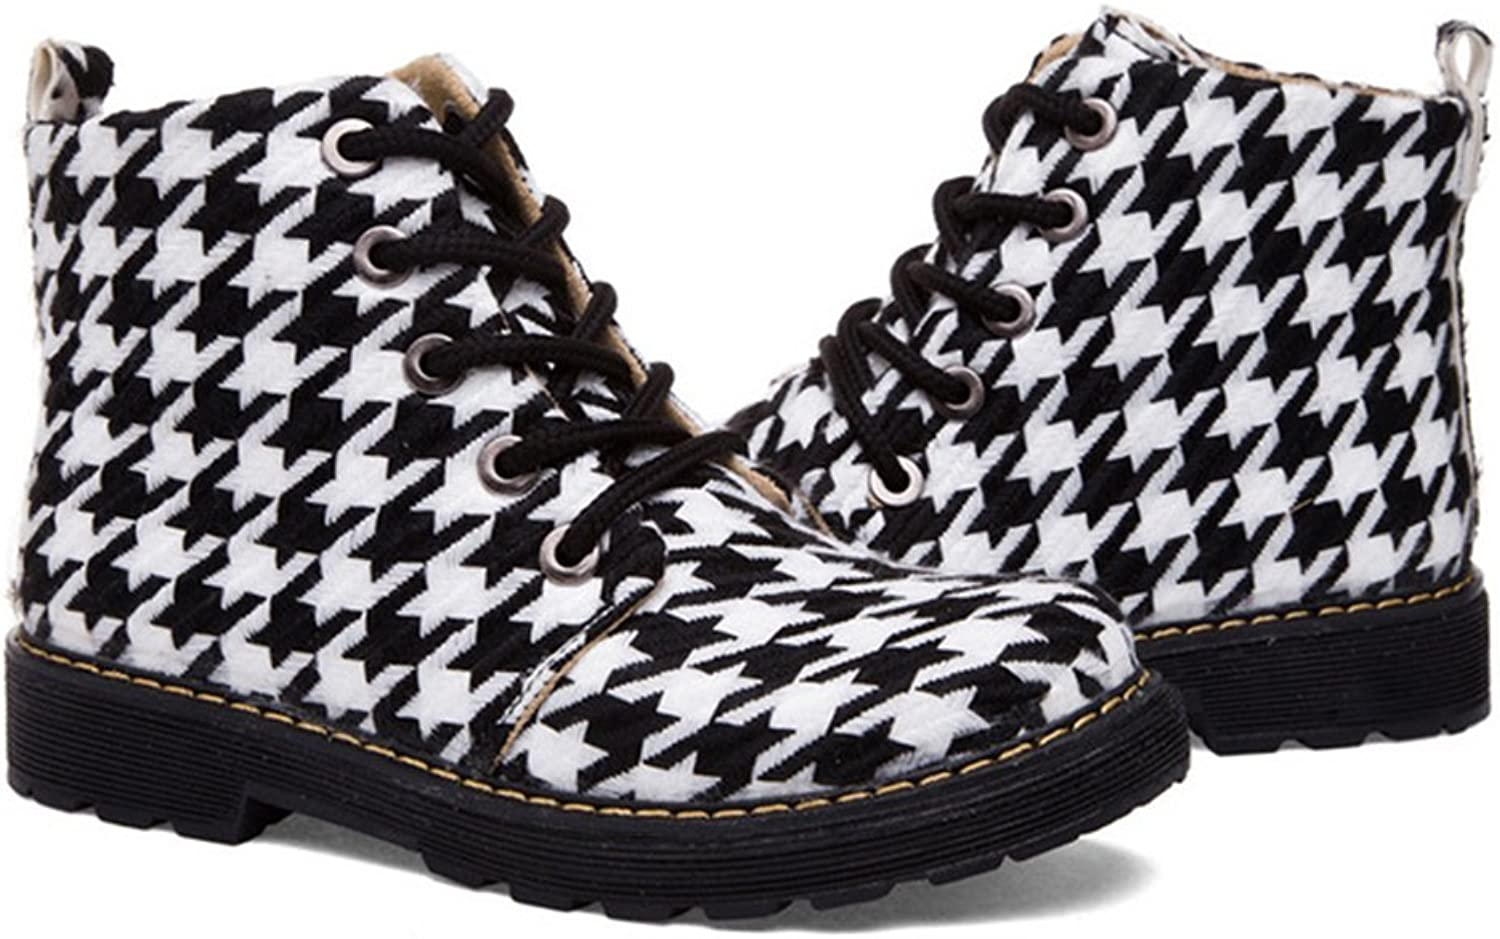 BININBOX Women's Check Pattern Lace-Up Boot Black